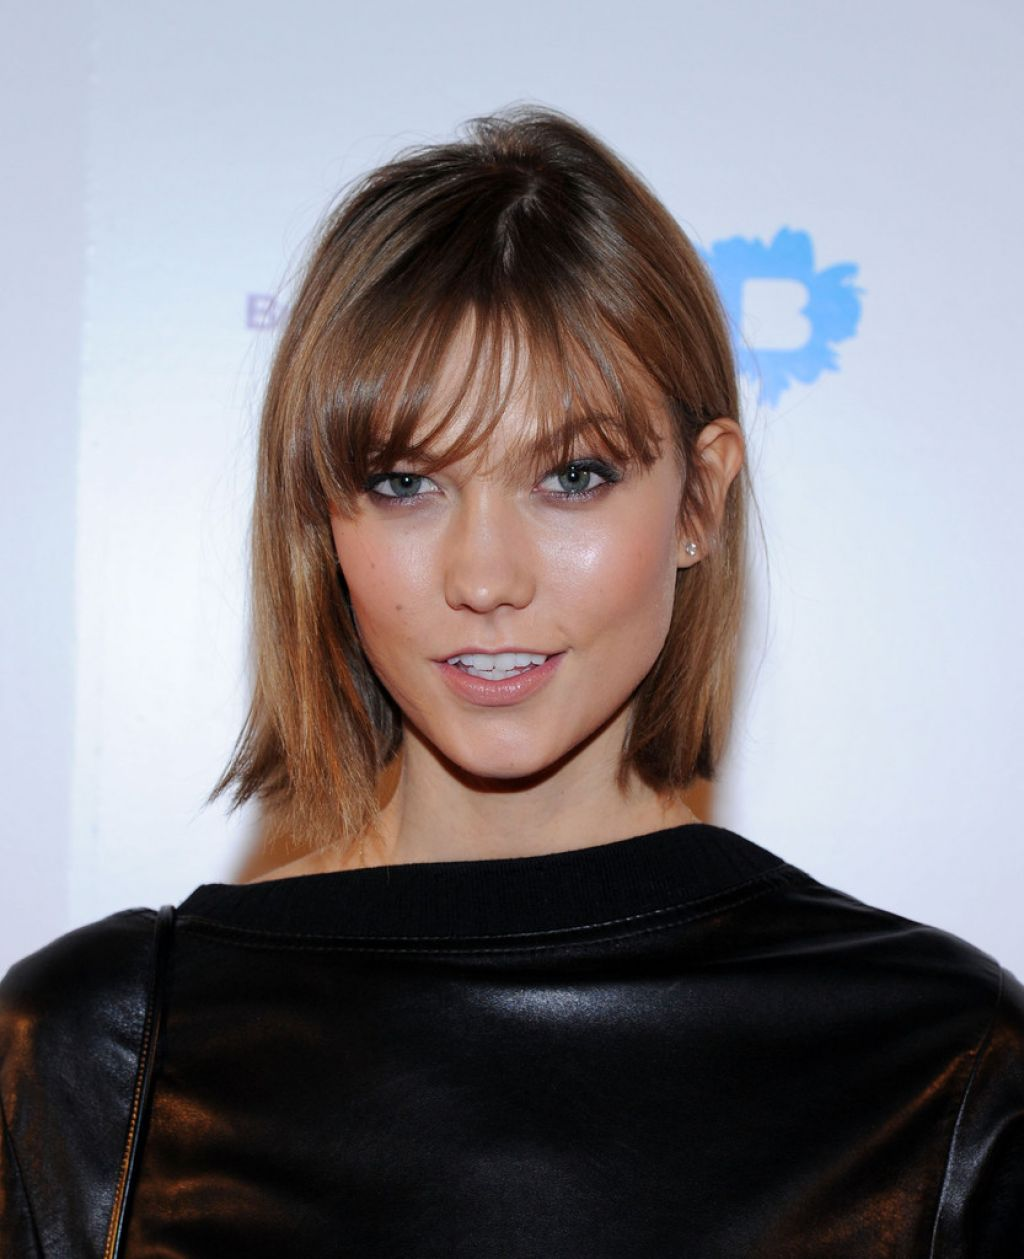 Karlie Kloss Red Carpet Photos - The Fashion World of Jean Paul Gaultier